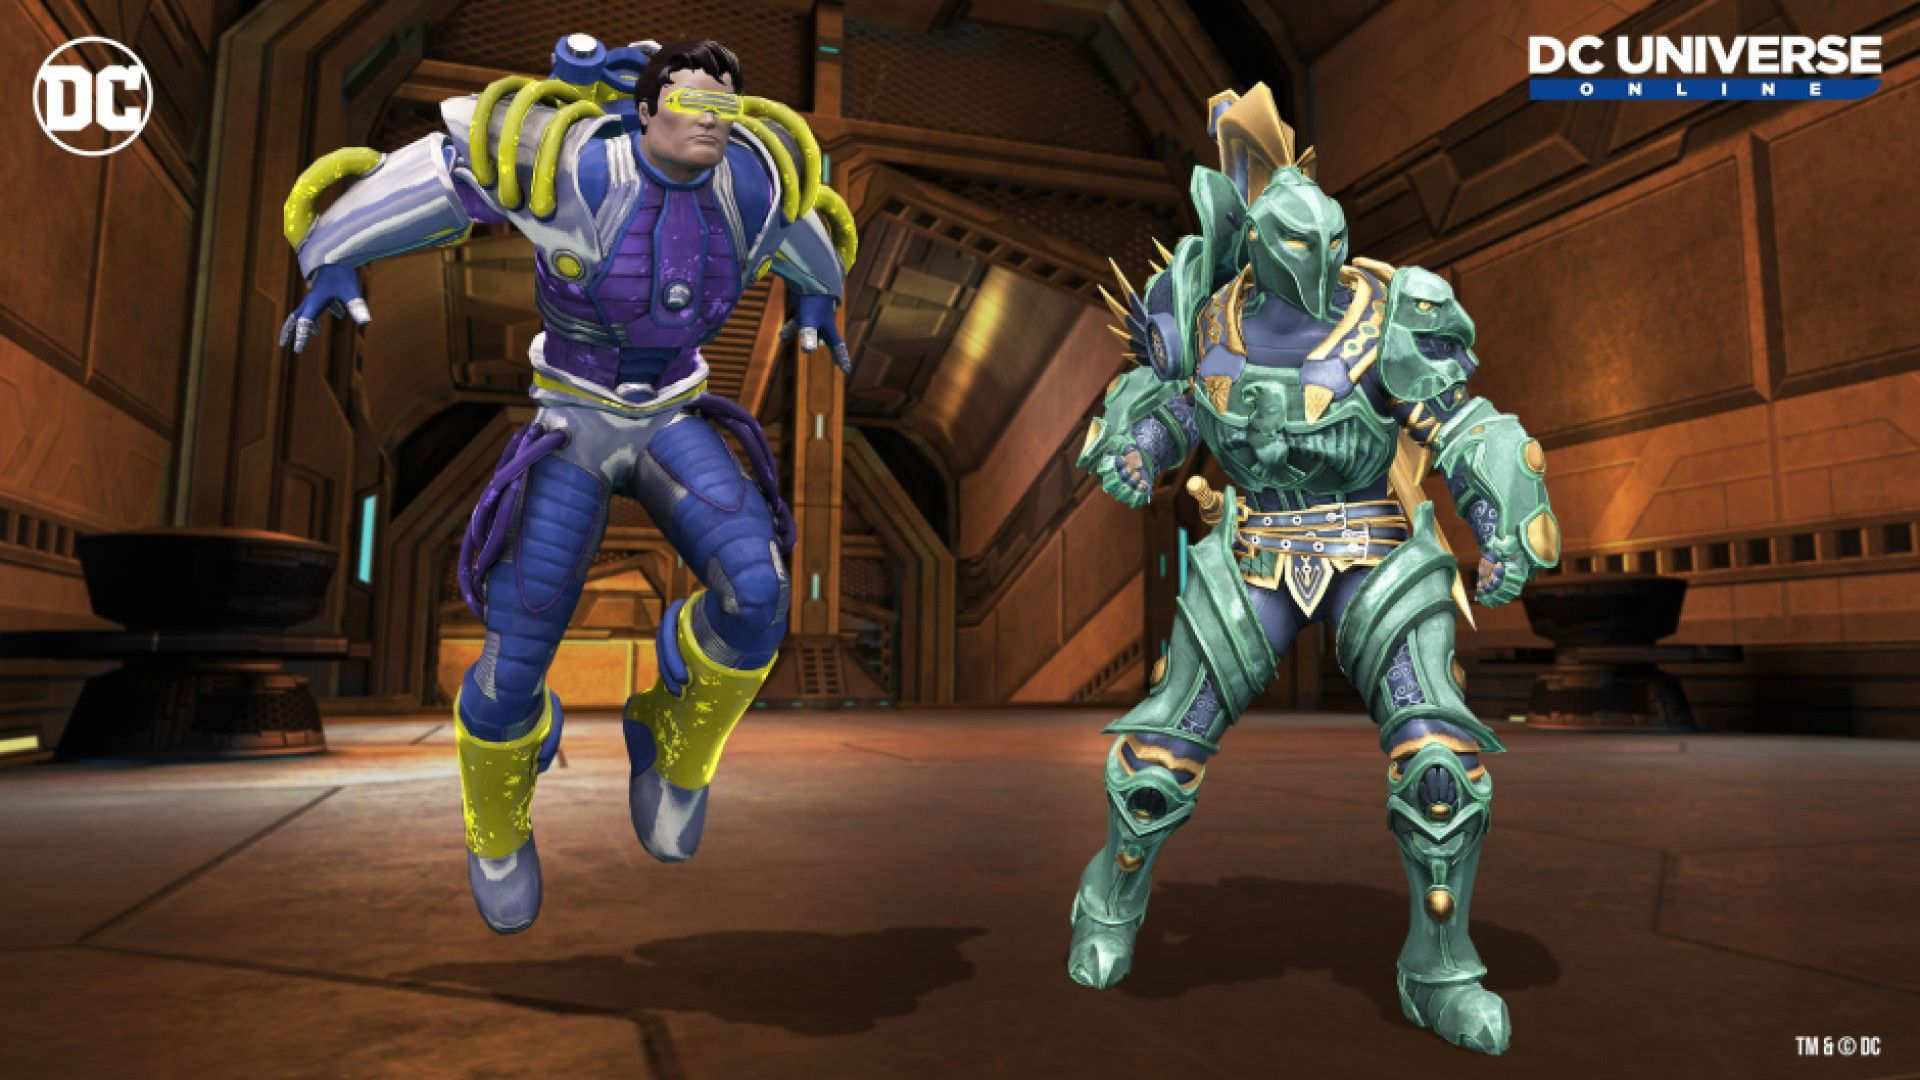 Happy 10th Anniversary Dc Universe Online In 2021 Dc Universe Online Happy 10th Anniversary Dc Universe